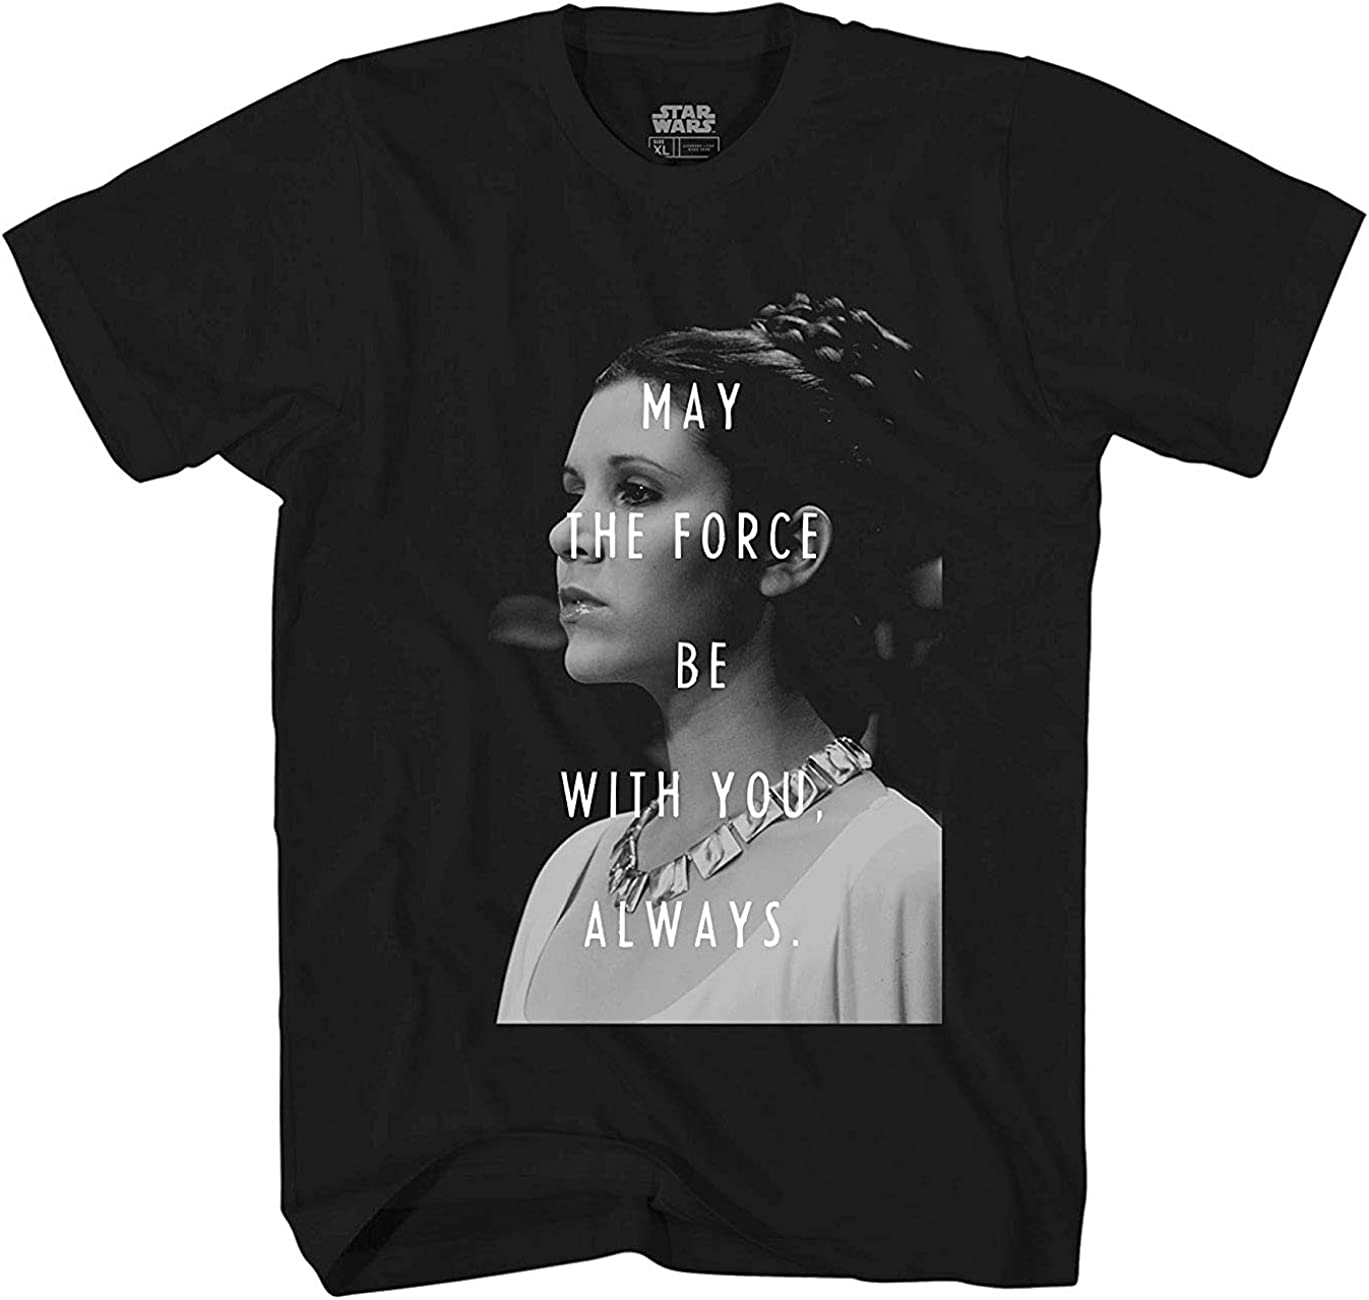 Star Wars Princess Leia May The Force Be with You T-Shirt